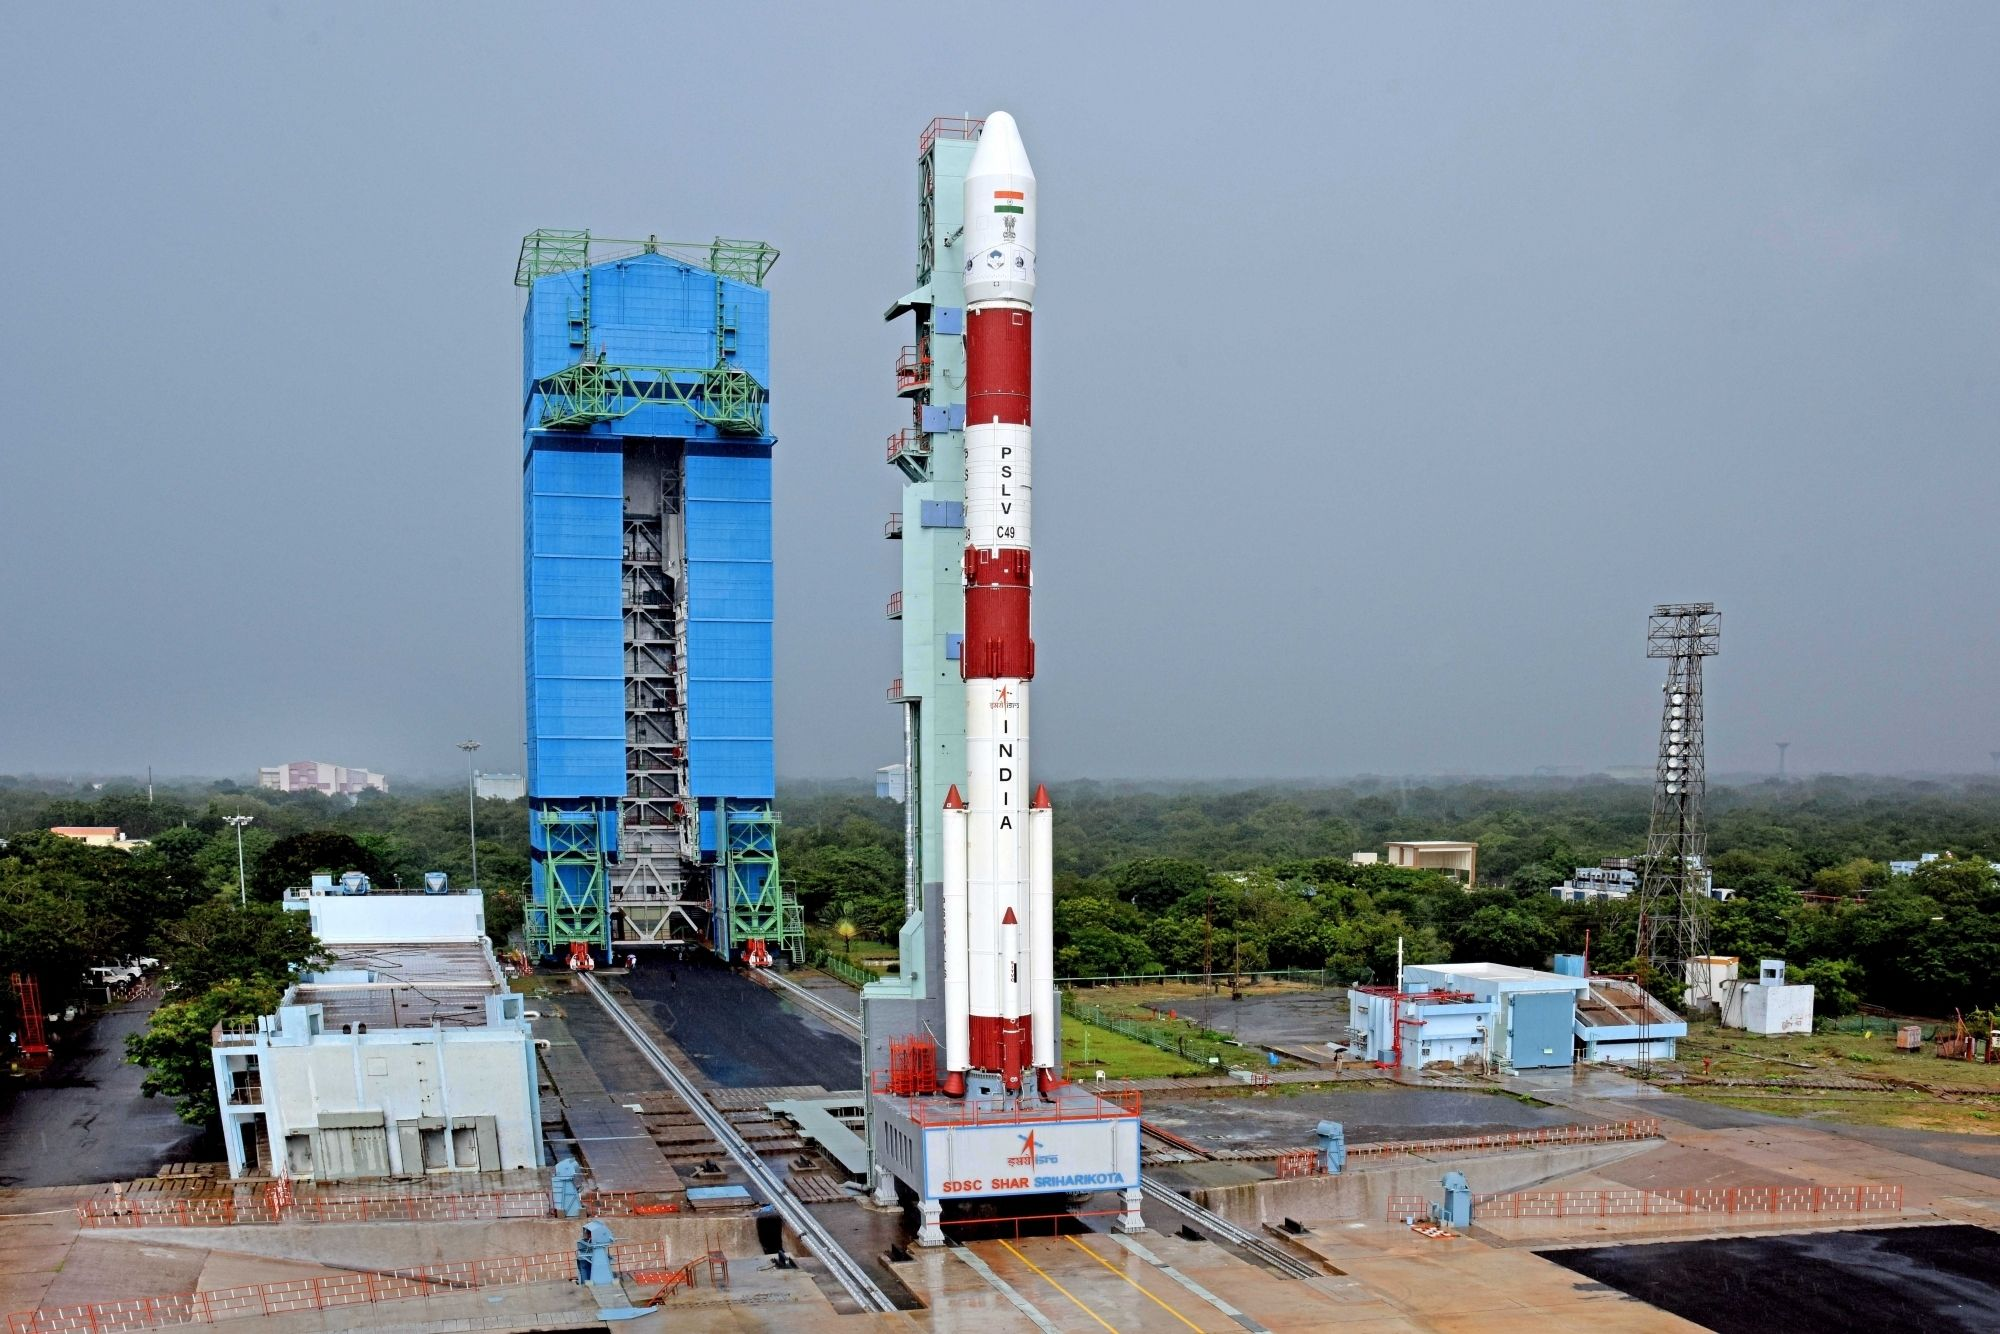 Countdown For Launch of India's Radar Imaging Satellite PSLV-C49 Begins on Friday